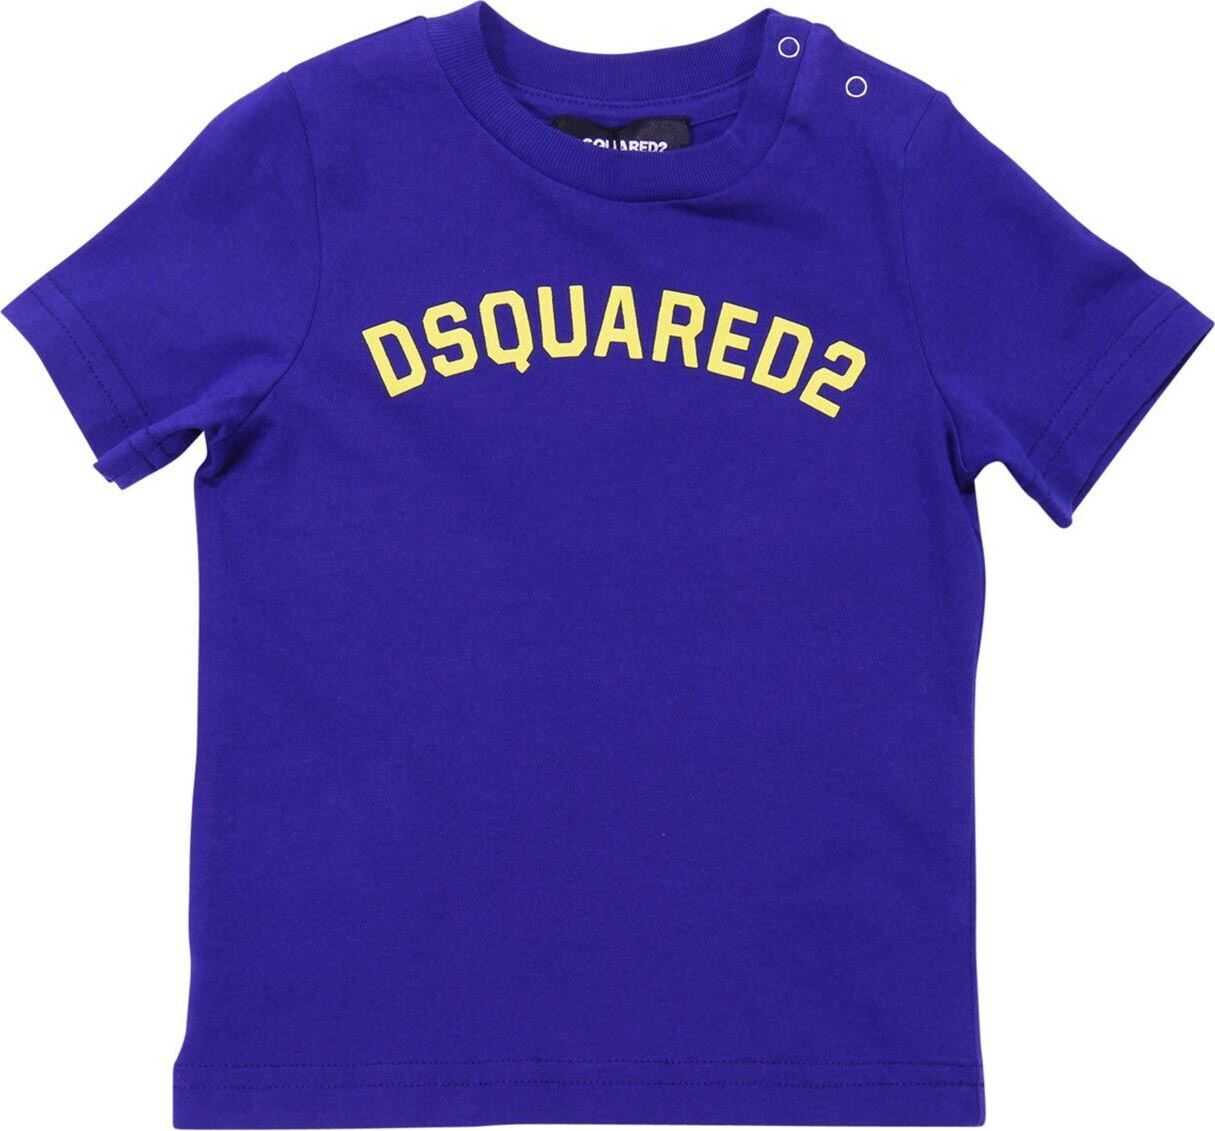 Blue T-Shirt With Dsquared2 Print